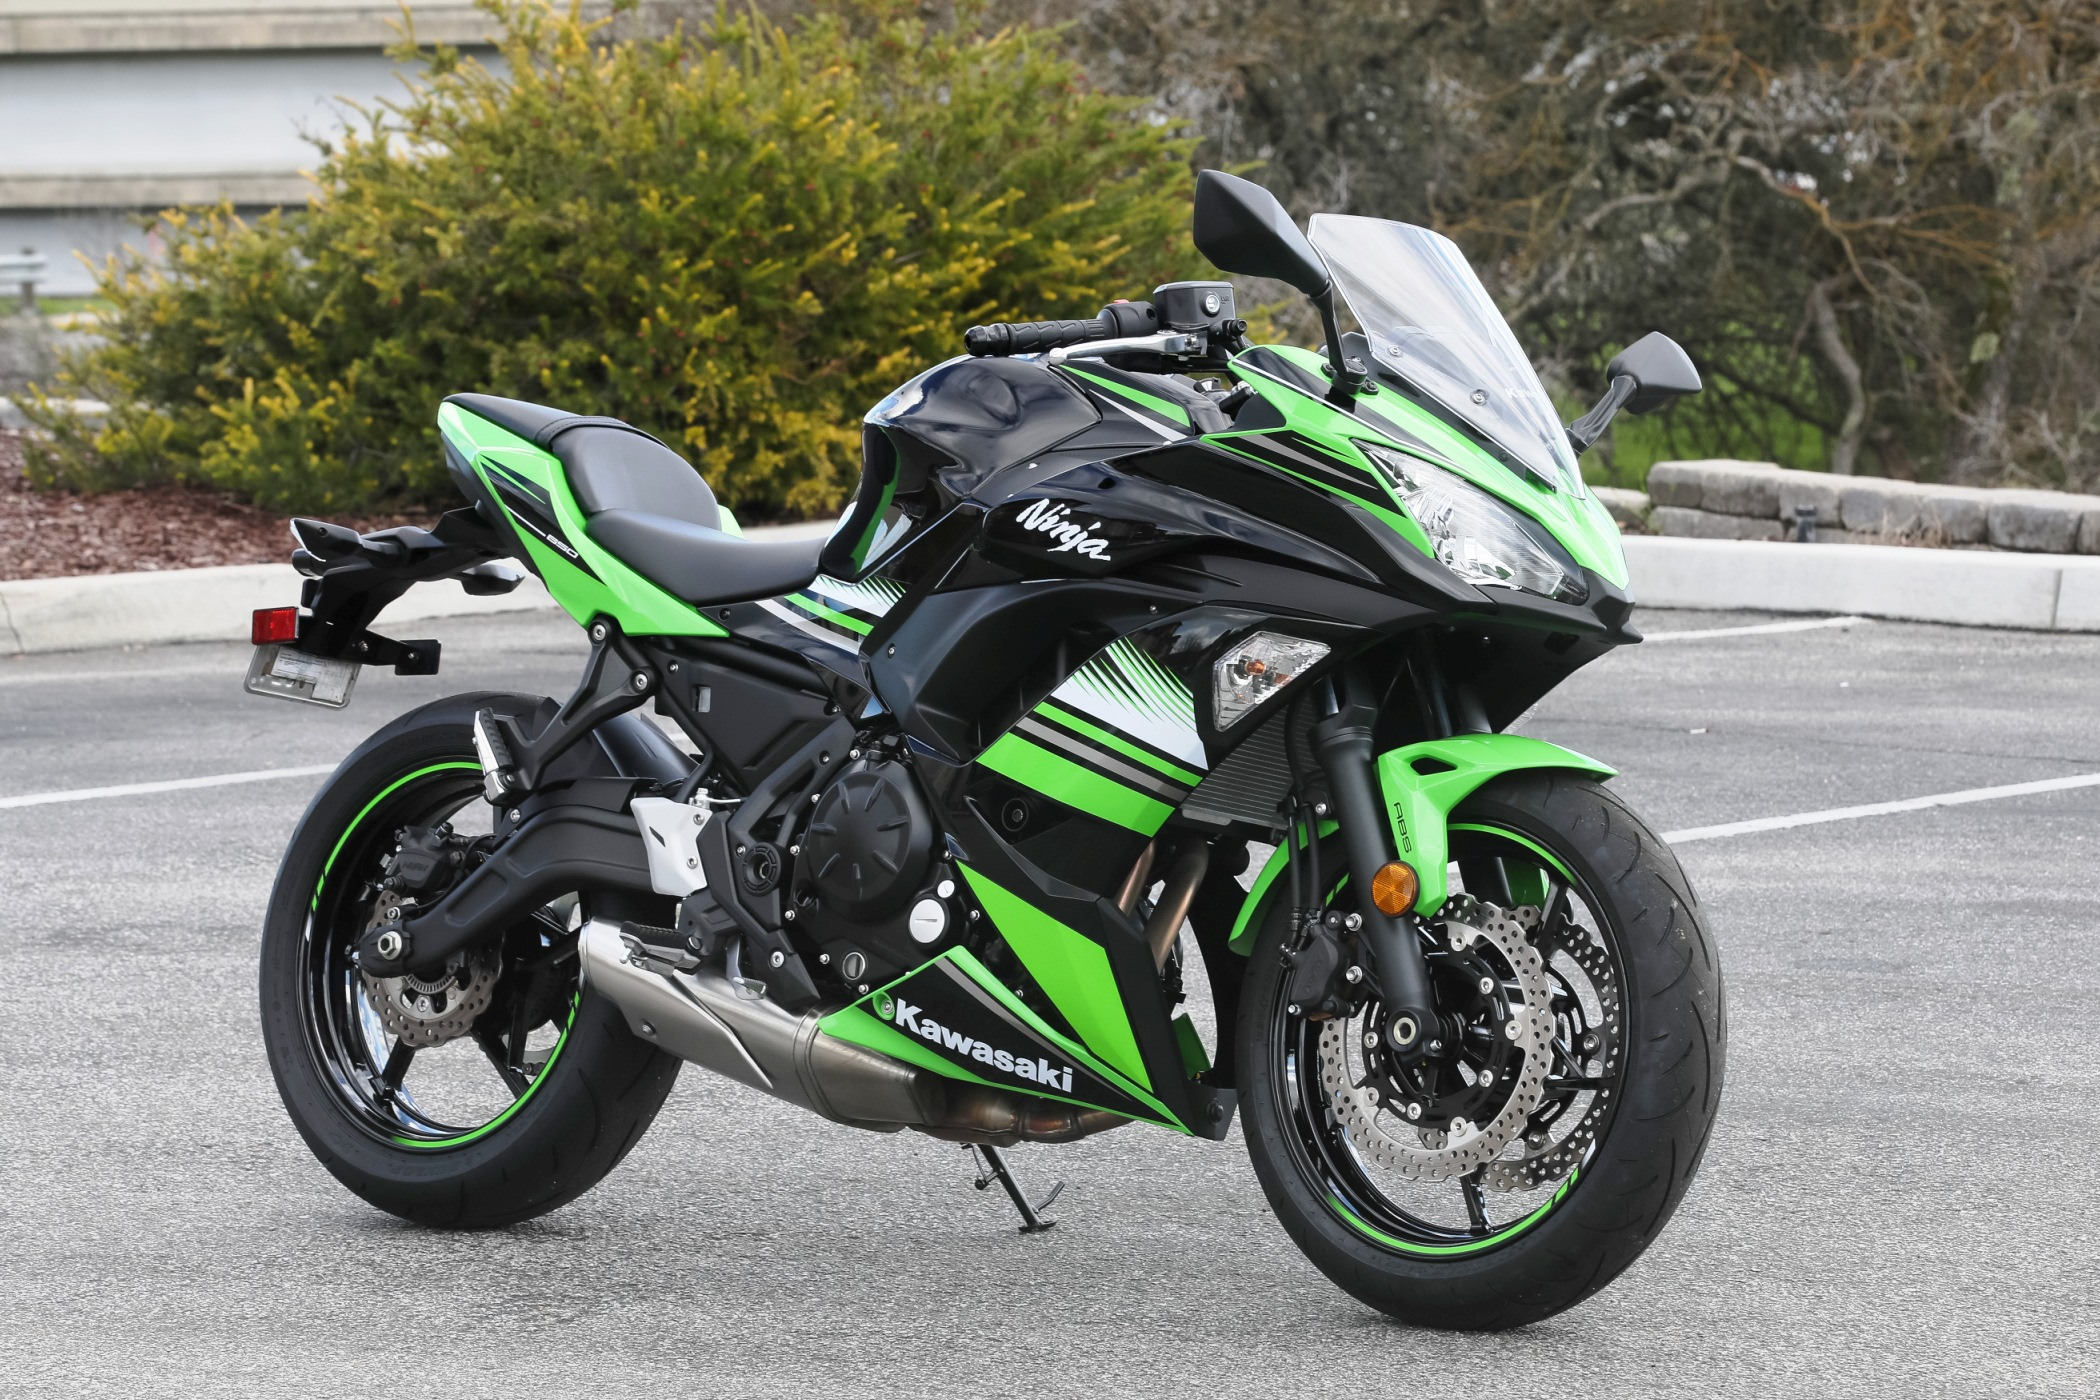 2017 Kawasaki Ninja 650 First Ride Review Revzilla